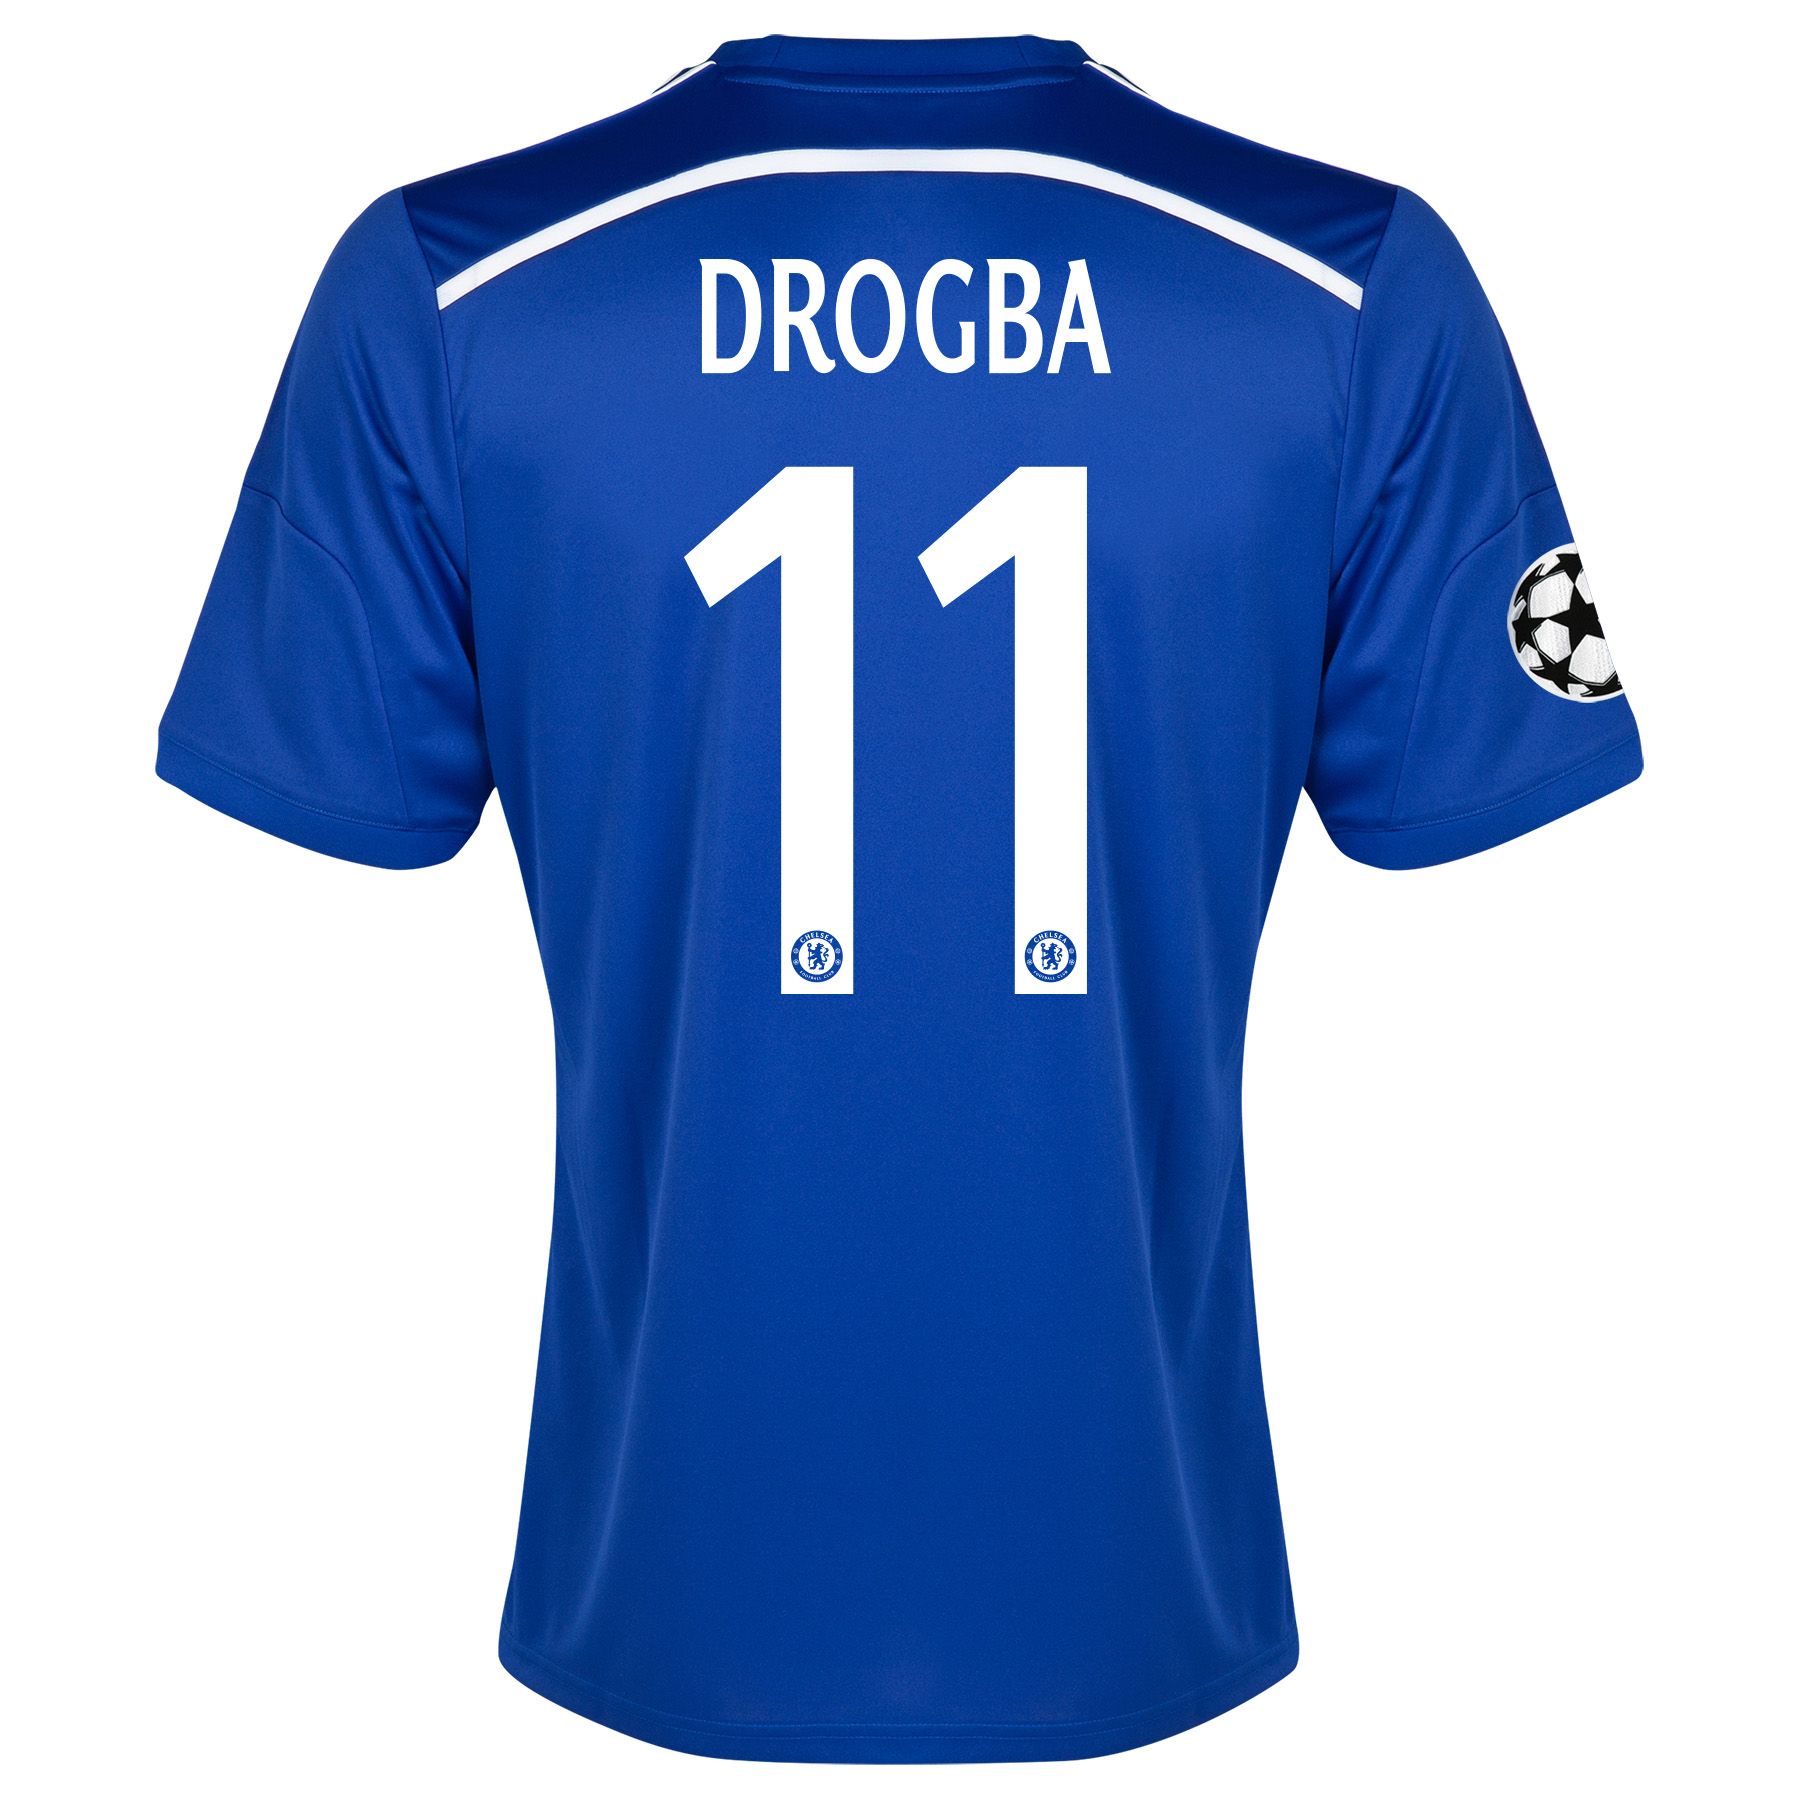 Chelsea Uefa Champions League Home Shirt 2014/15 - Outsize with Drogba 11 printing